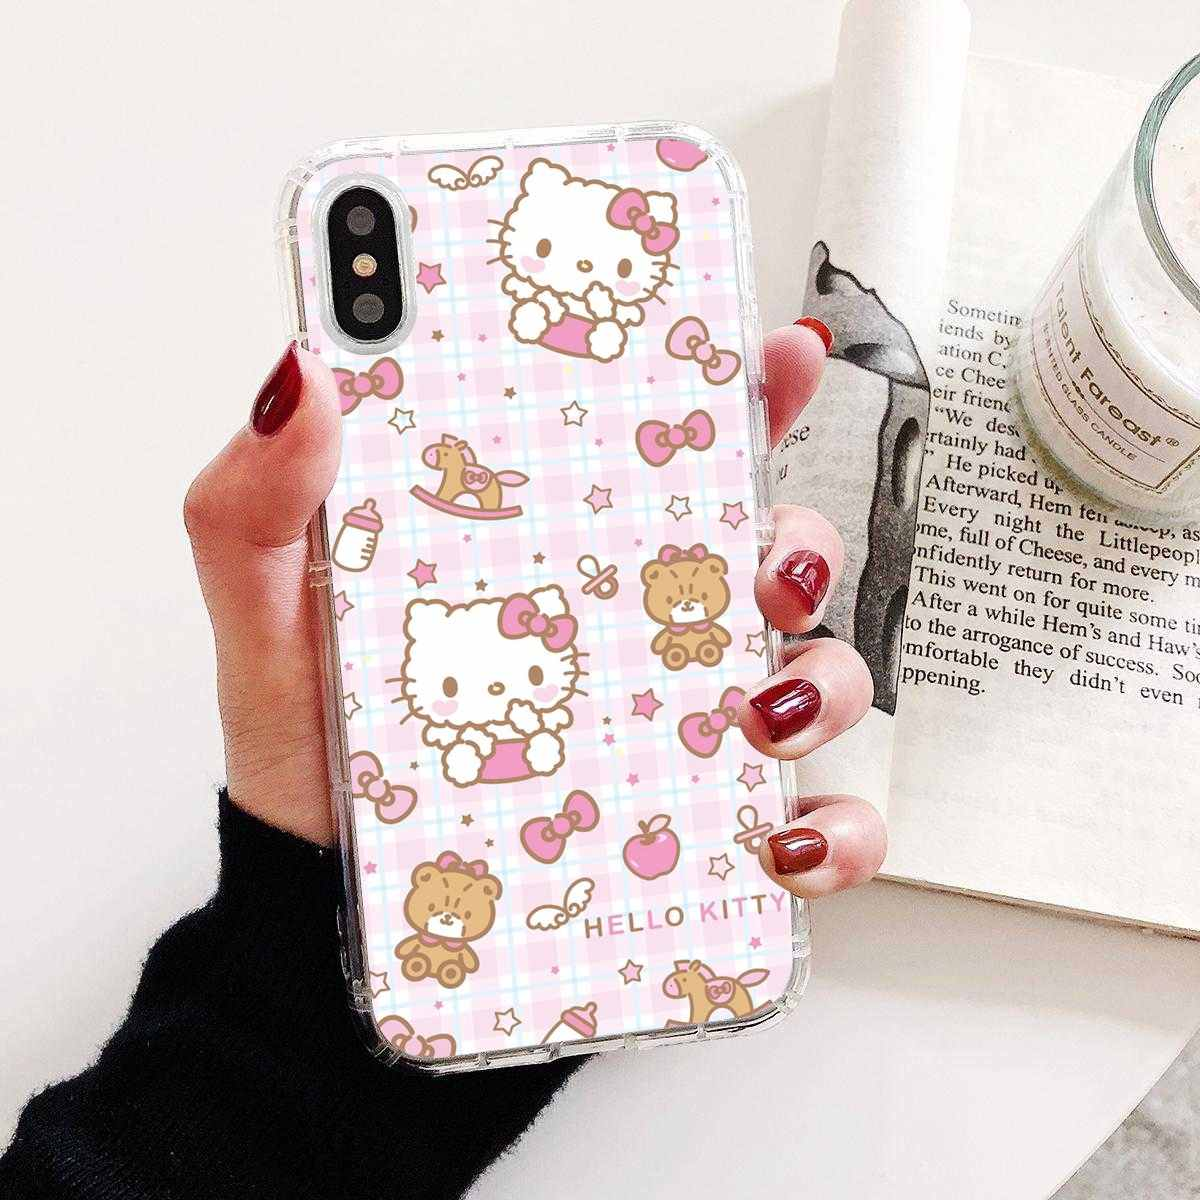 Soft SHELL Hello Kitty CoolสำหรับiPhone 11 Pro 4 4S 5S SE 5C 6 6S 7 8 X XR XS Plus MAXสำหรับiPod Touch